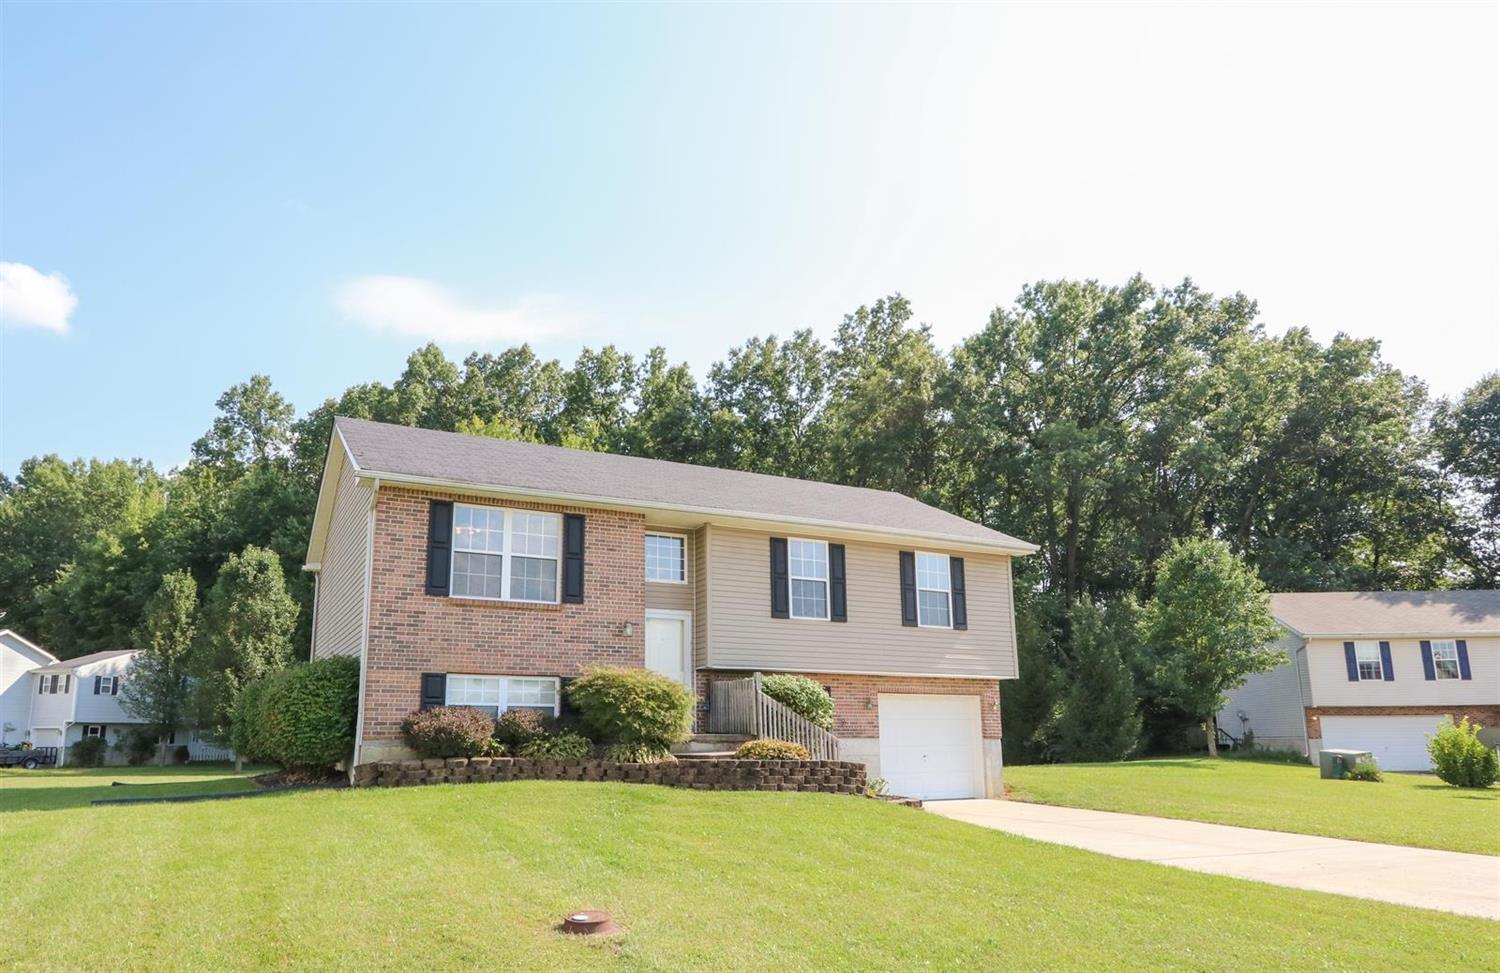 401 Courtney Dr Green Twp. - Brown Co., OH